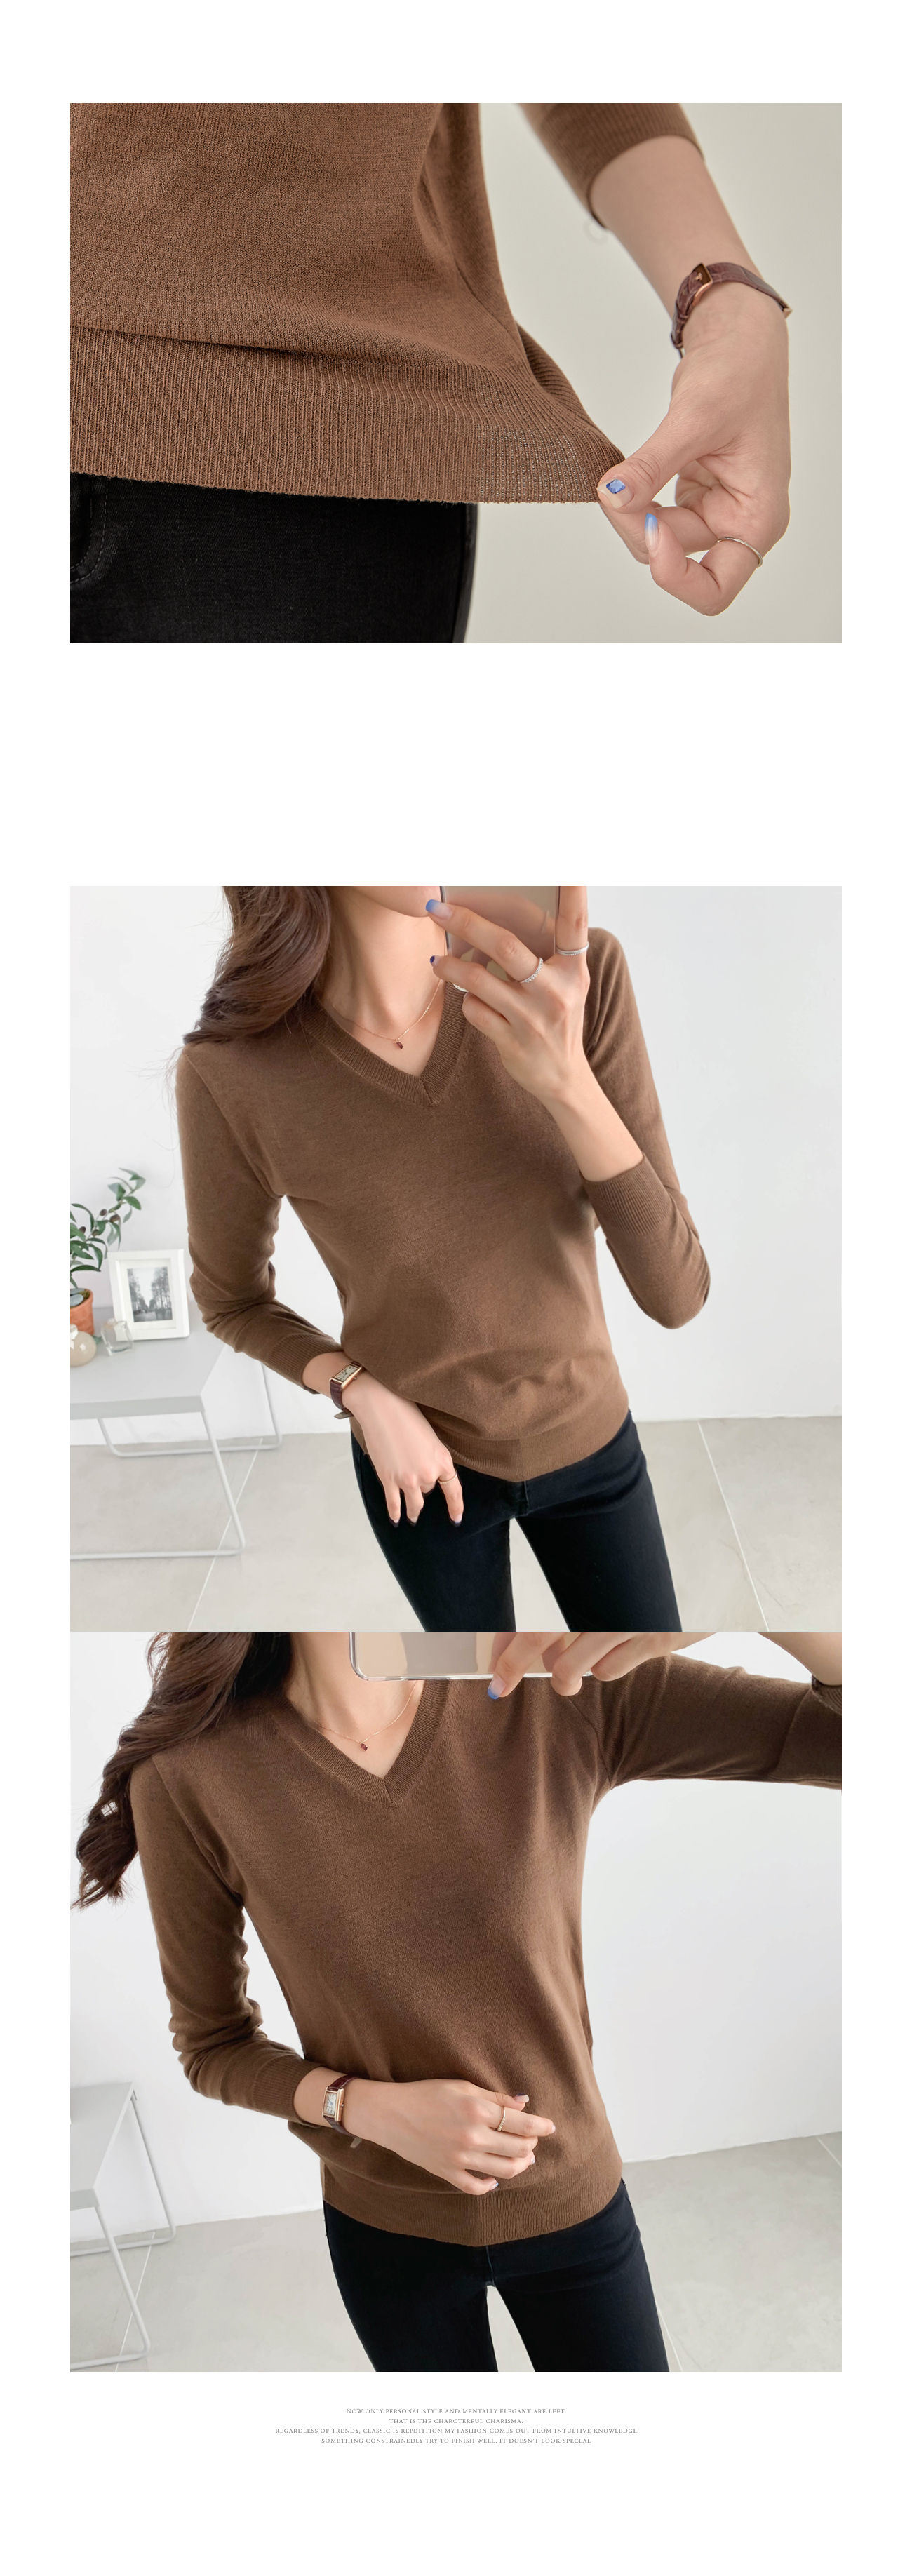 Clean Fit Simple V Neck Knit #107471